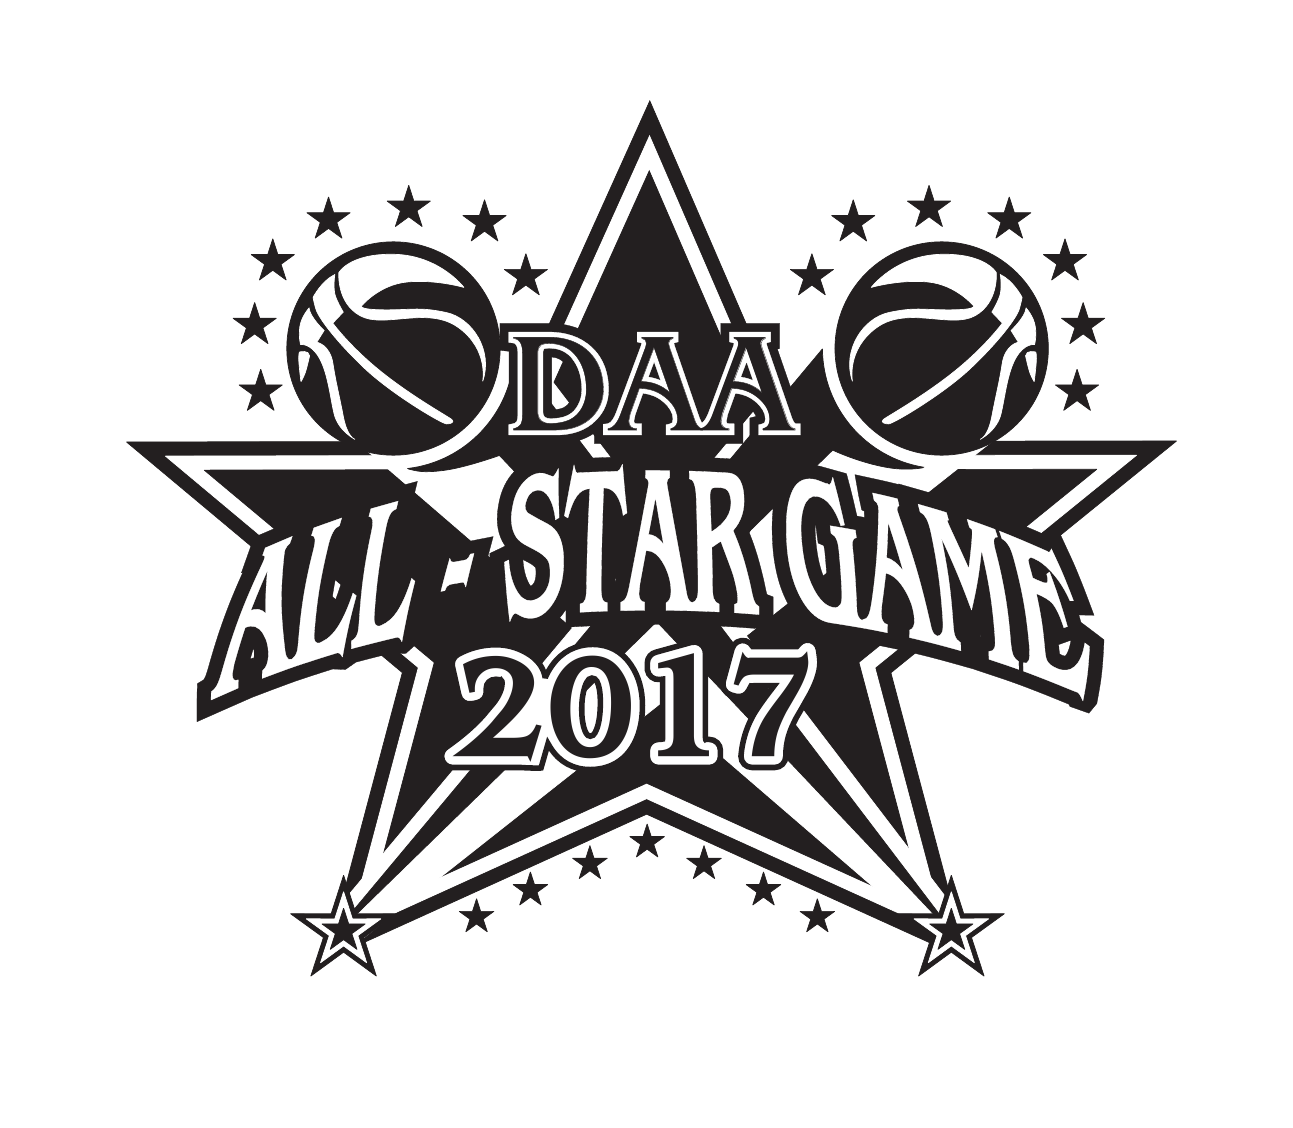 DAA All-Star Game 2017